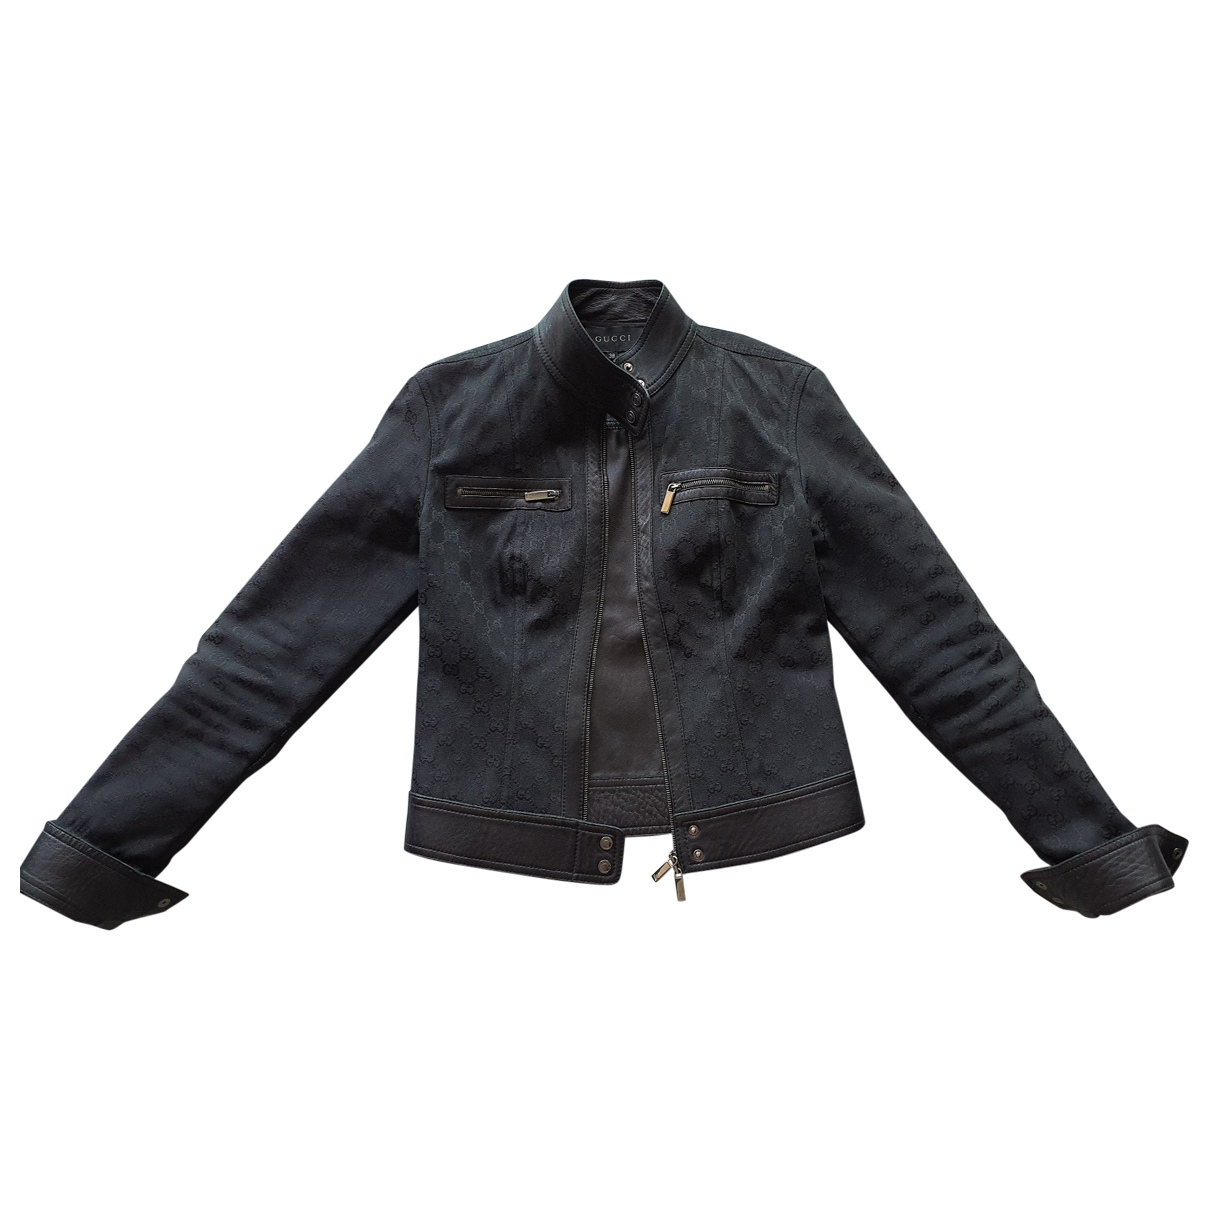 Gucci \N Black Denim - Jeans jacket for Women 38 IT